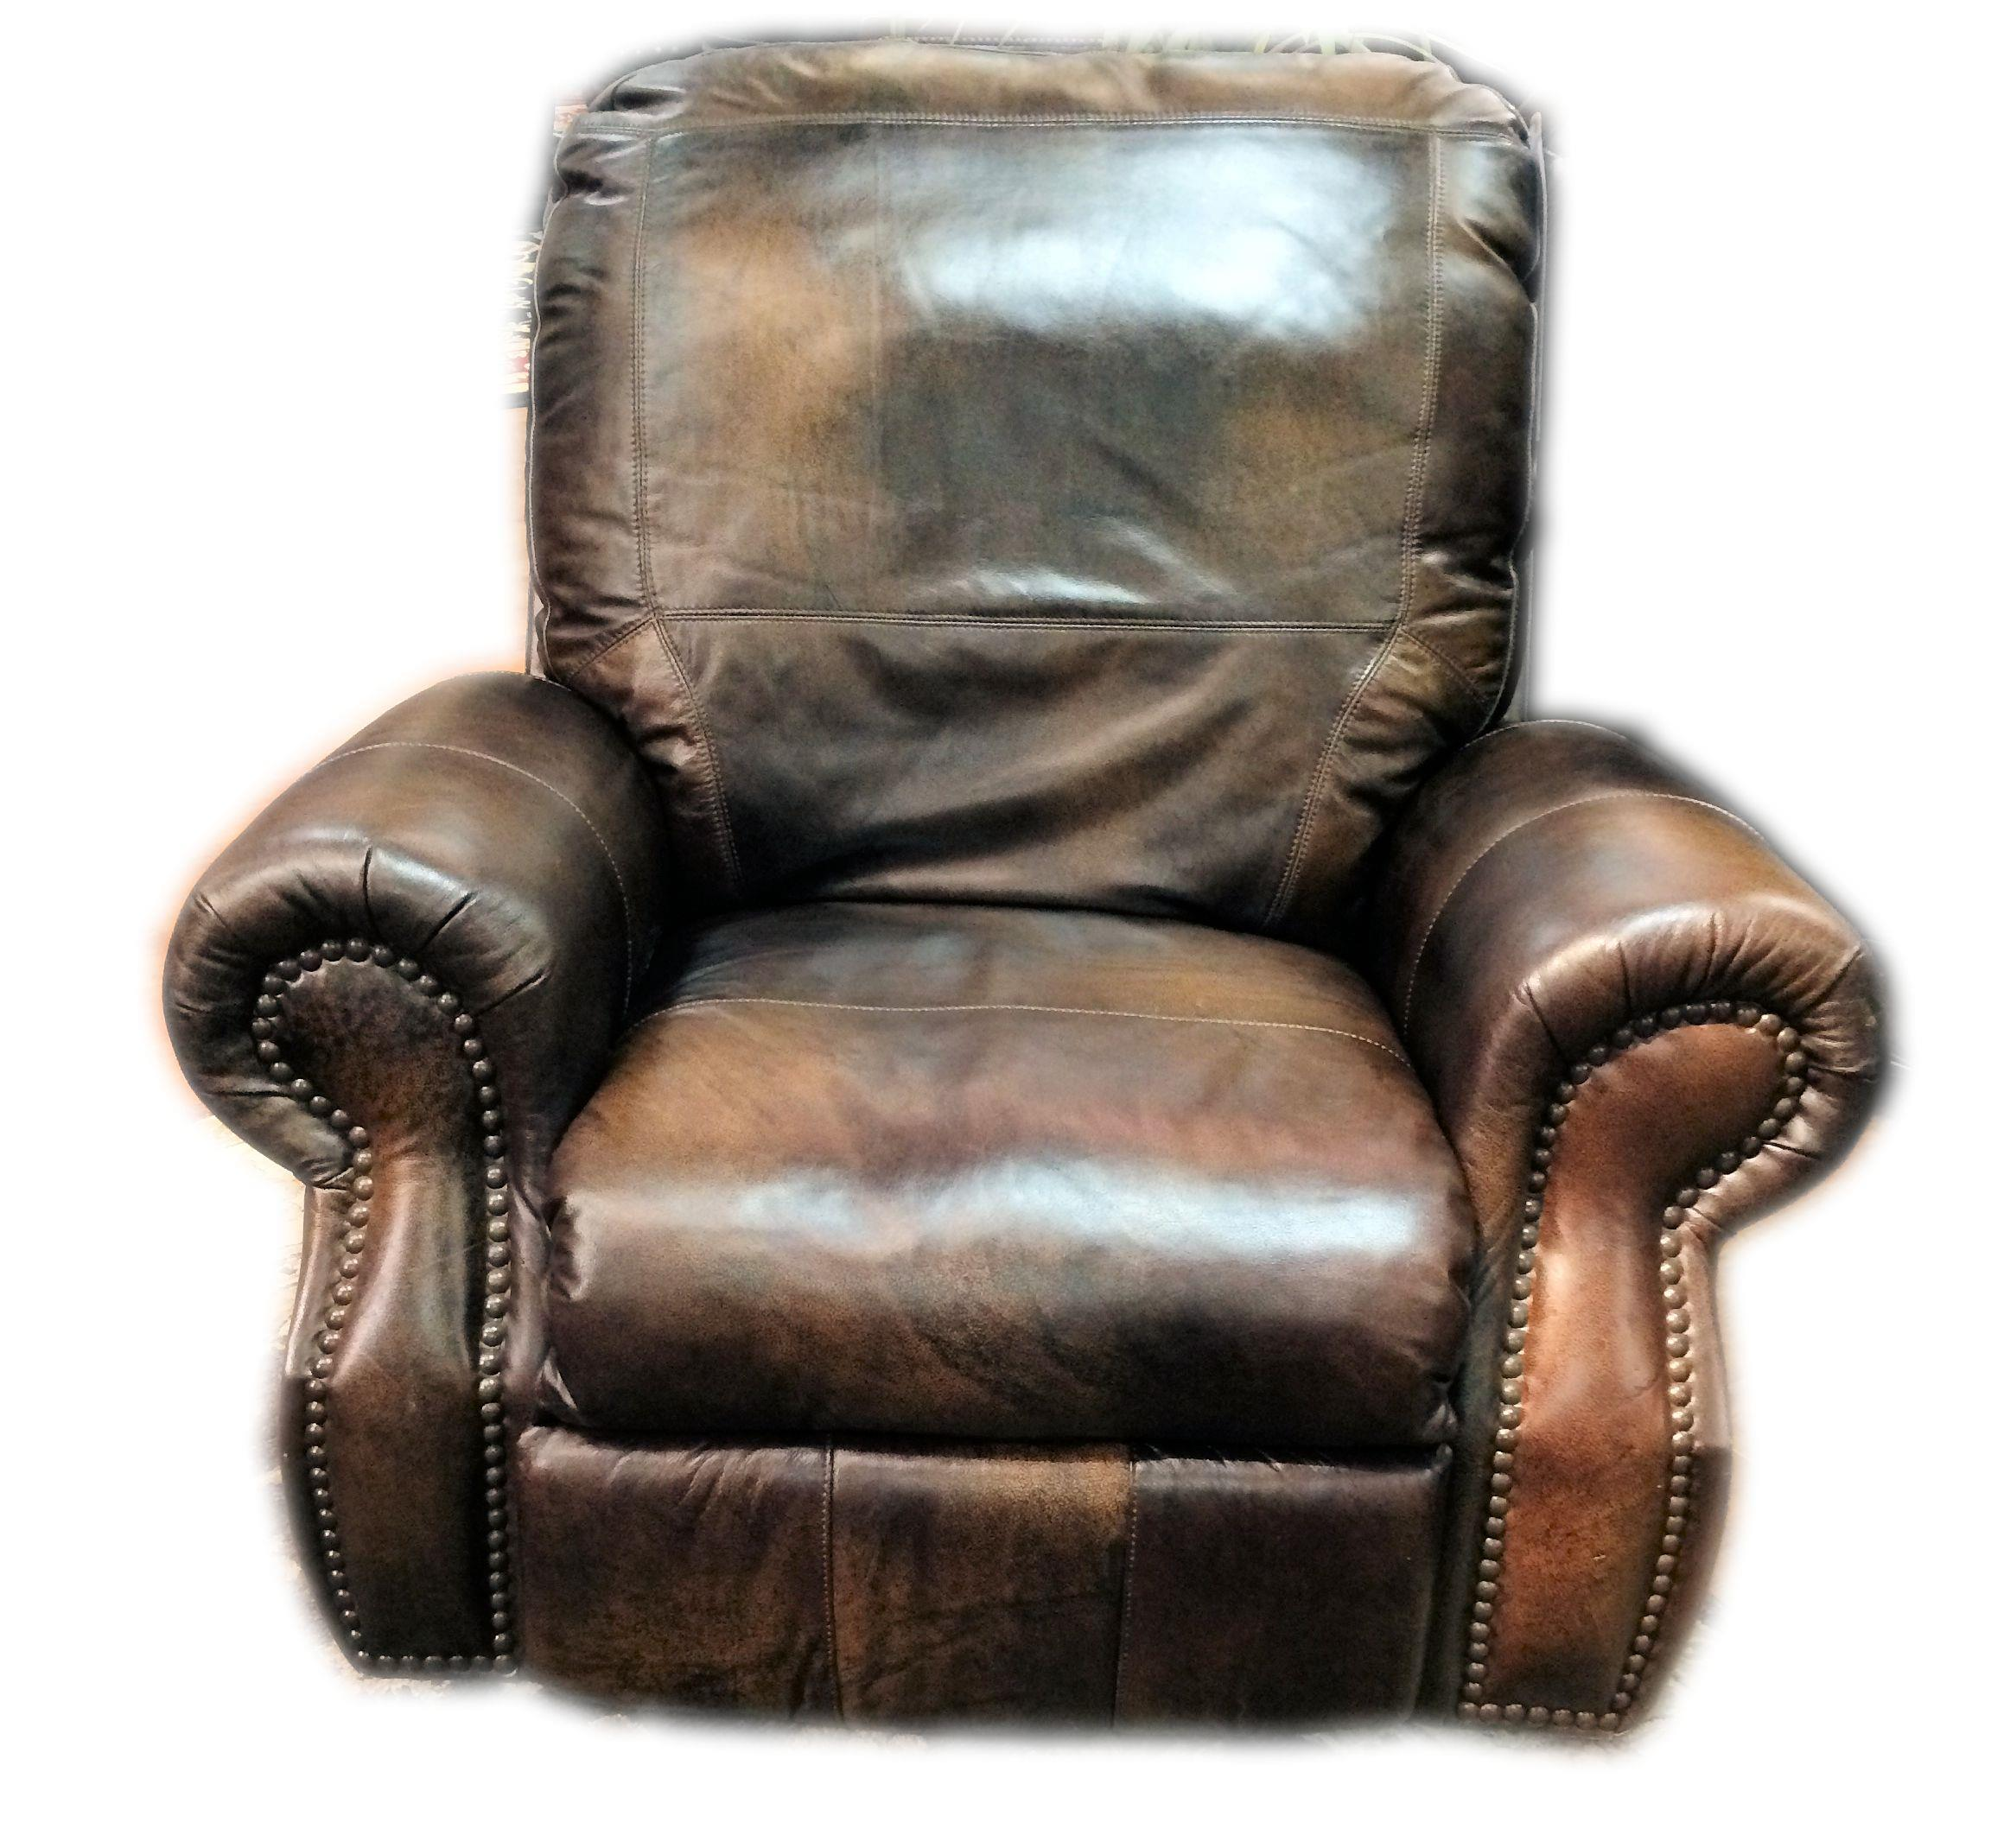 all leather recliner chairs how to make chair bags for school usa premium 8755 miskelly